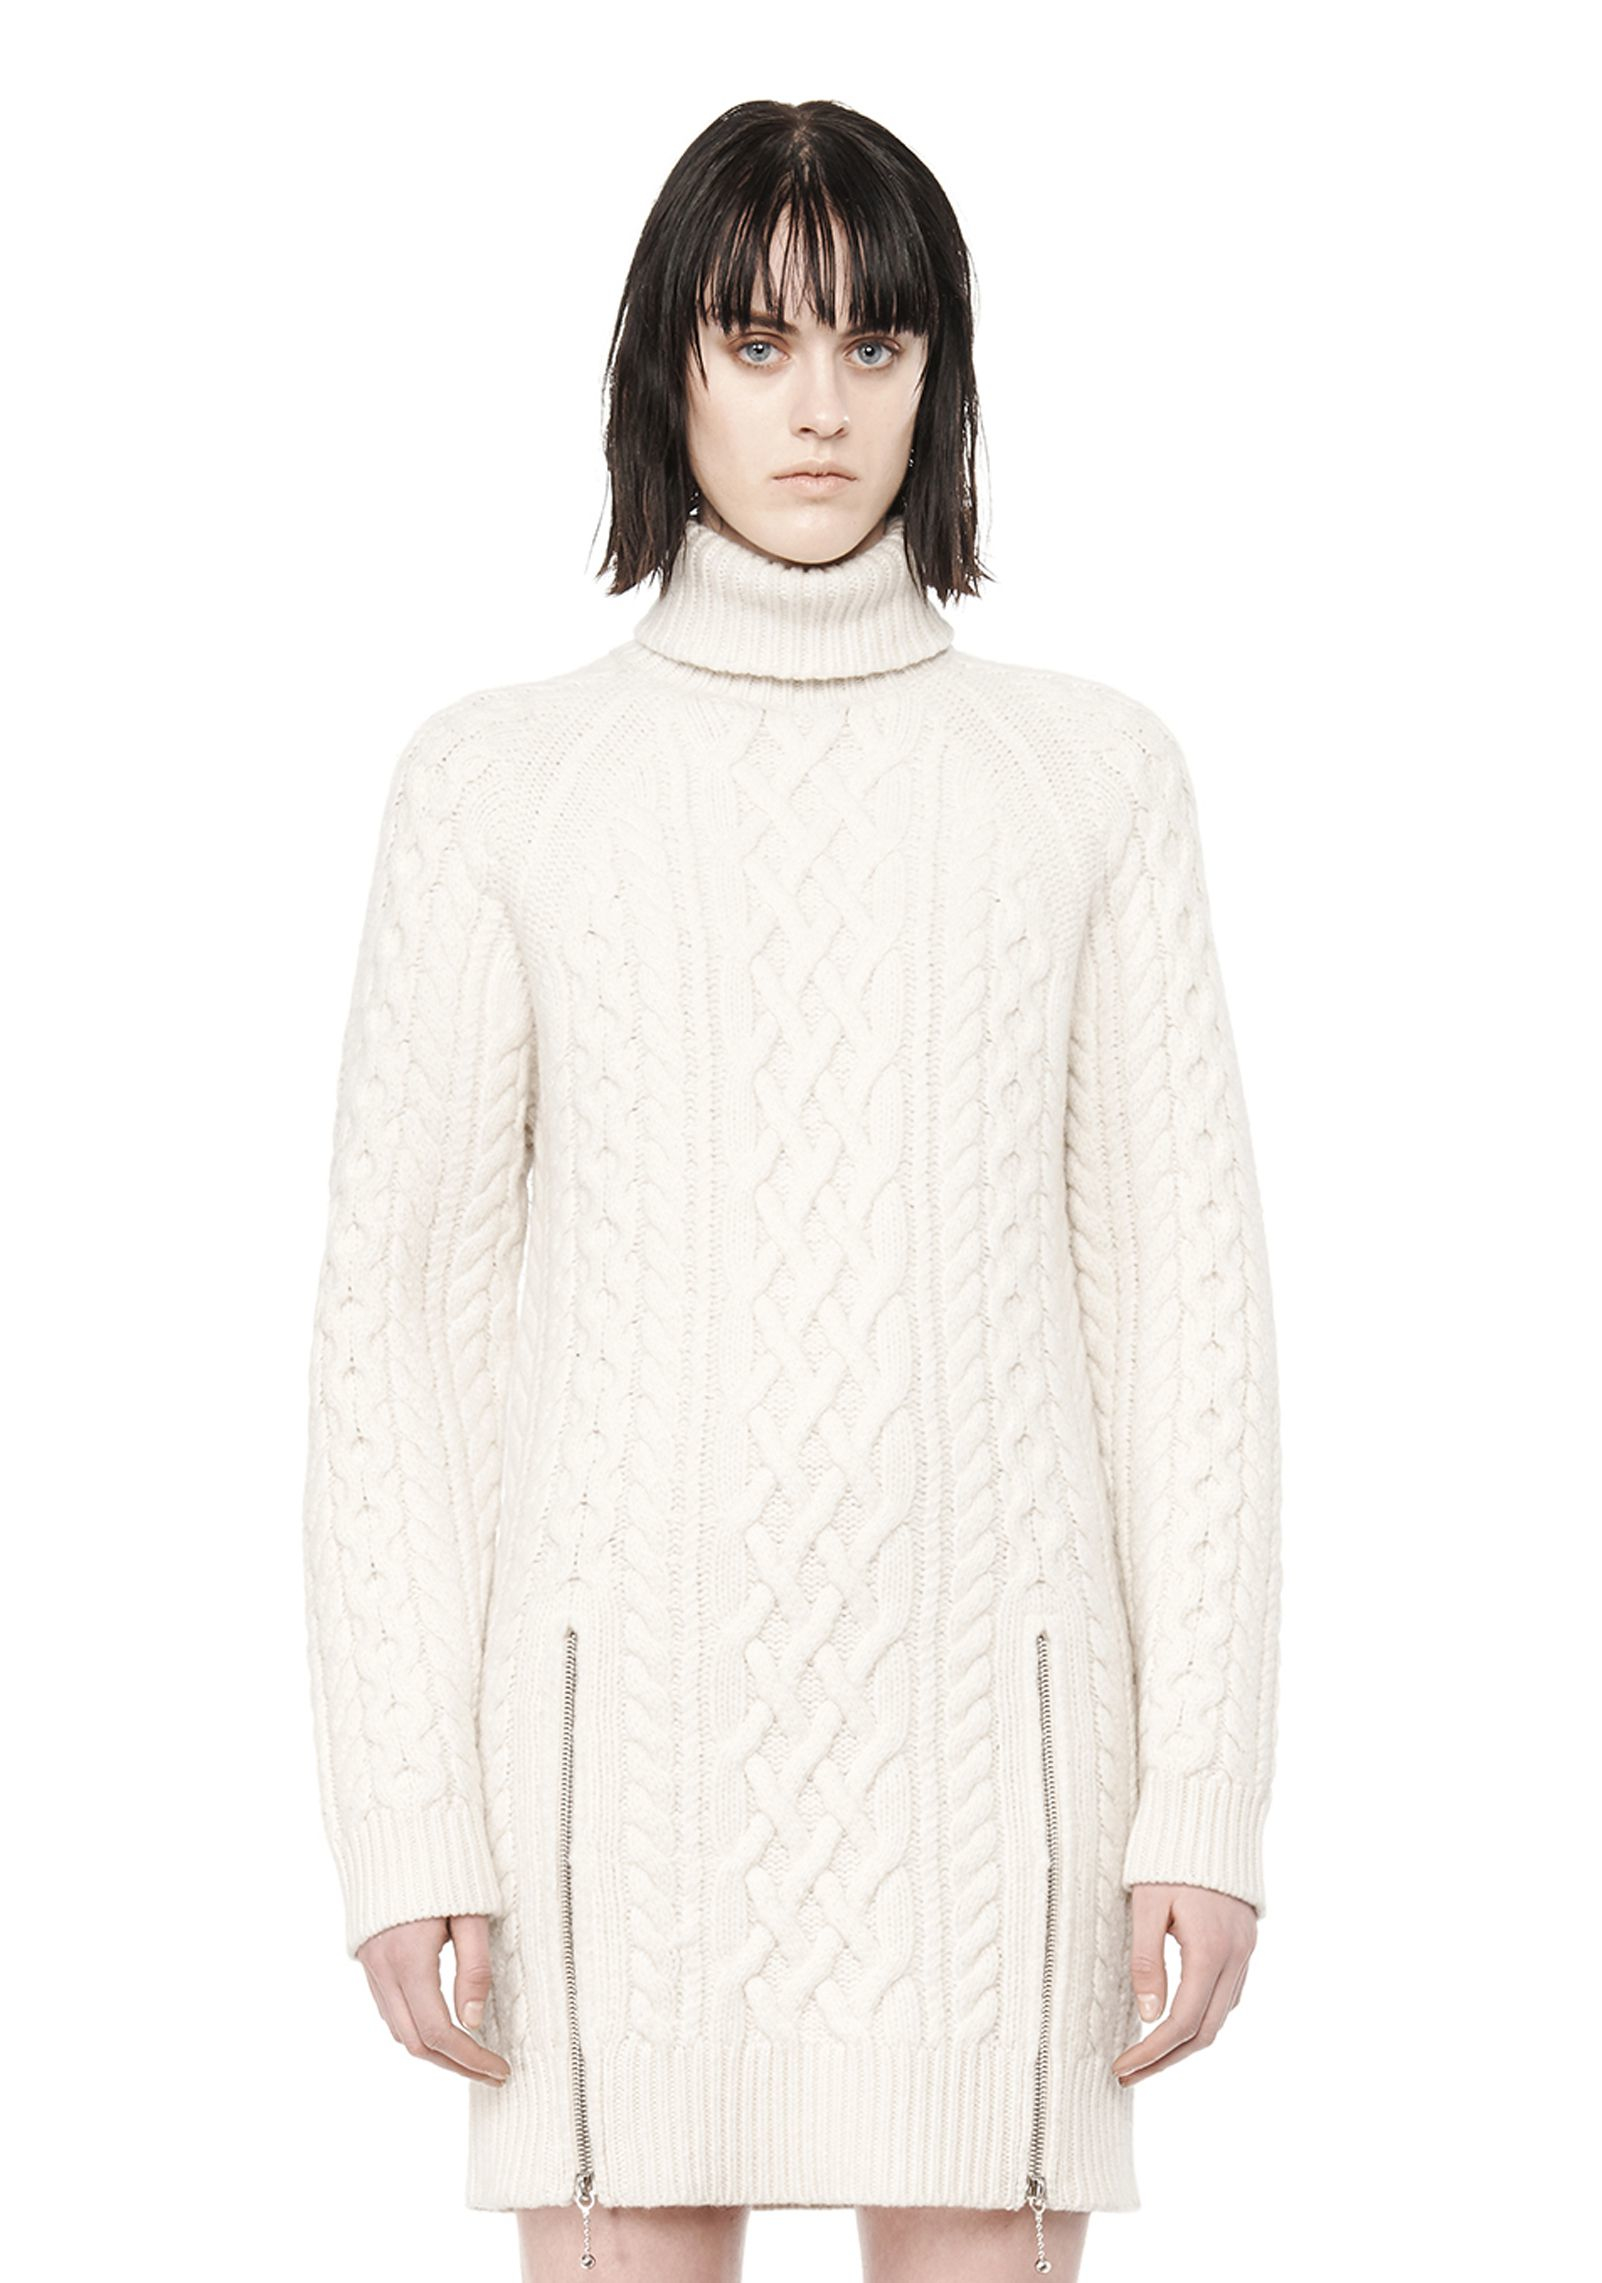 Knitting Pattern Turtleneck Dress : Alexander wang Cable Knit Turtleneck Dress in White Lyst